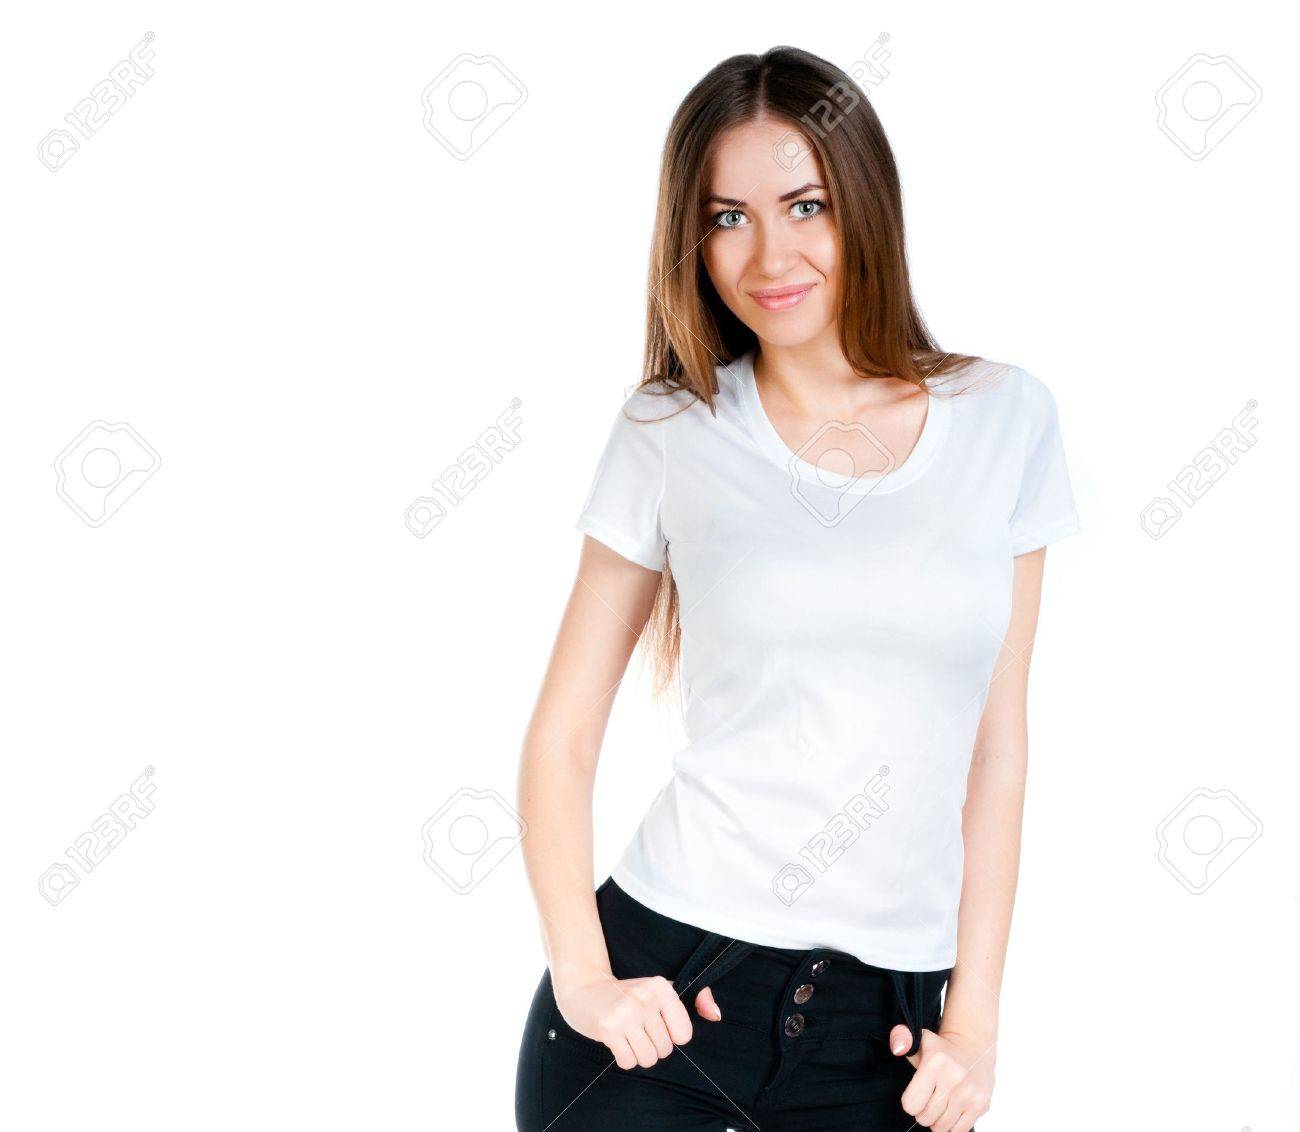 Design your own t-shirt female - Beautiful Teen In A Blank White T Shirt For You To Add Your Own Text